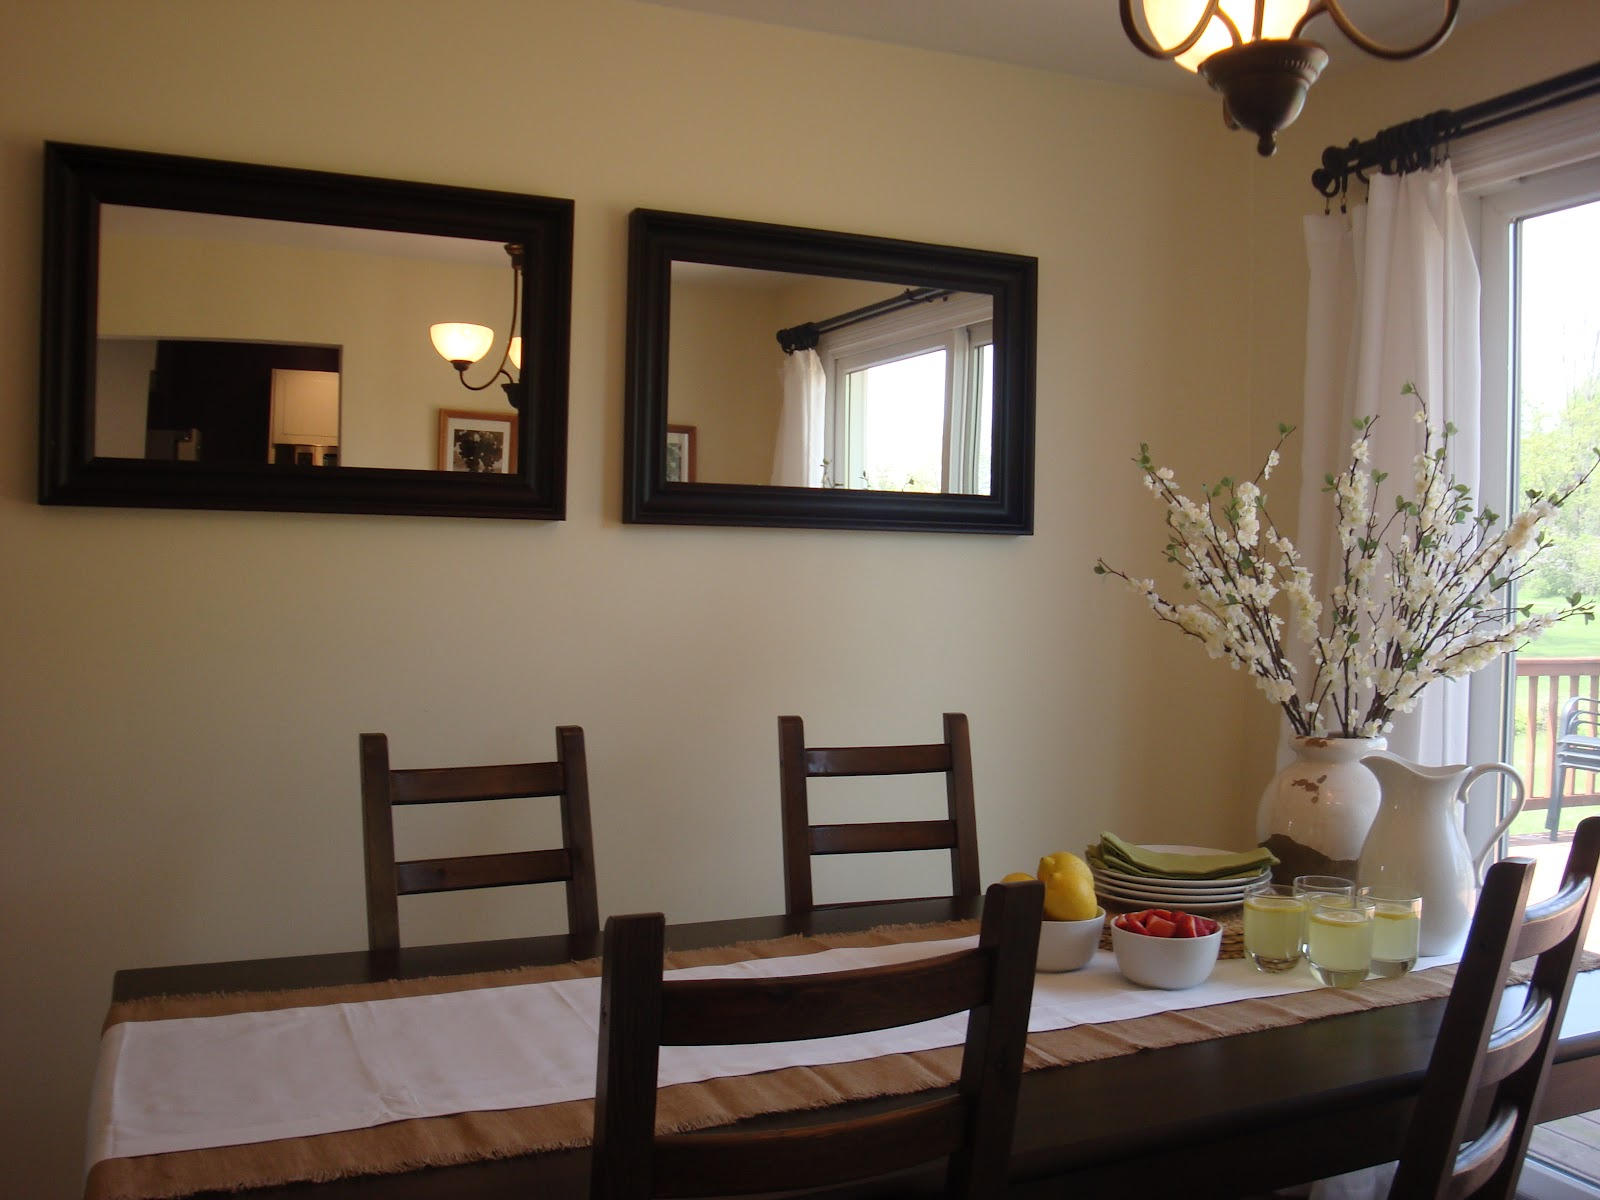 Ashley's Nest: Decorating A Dining Room